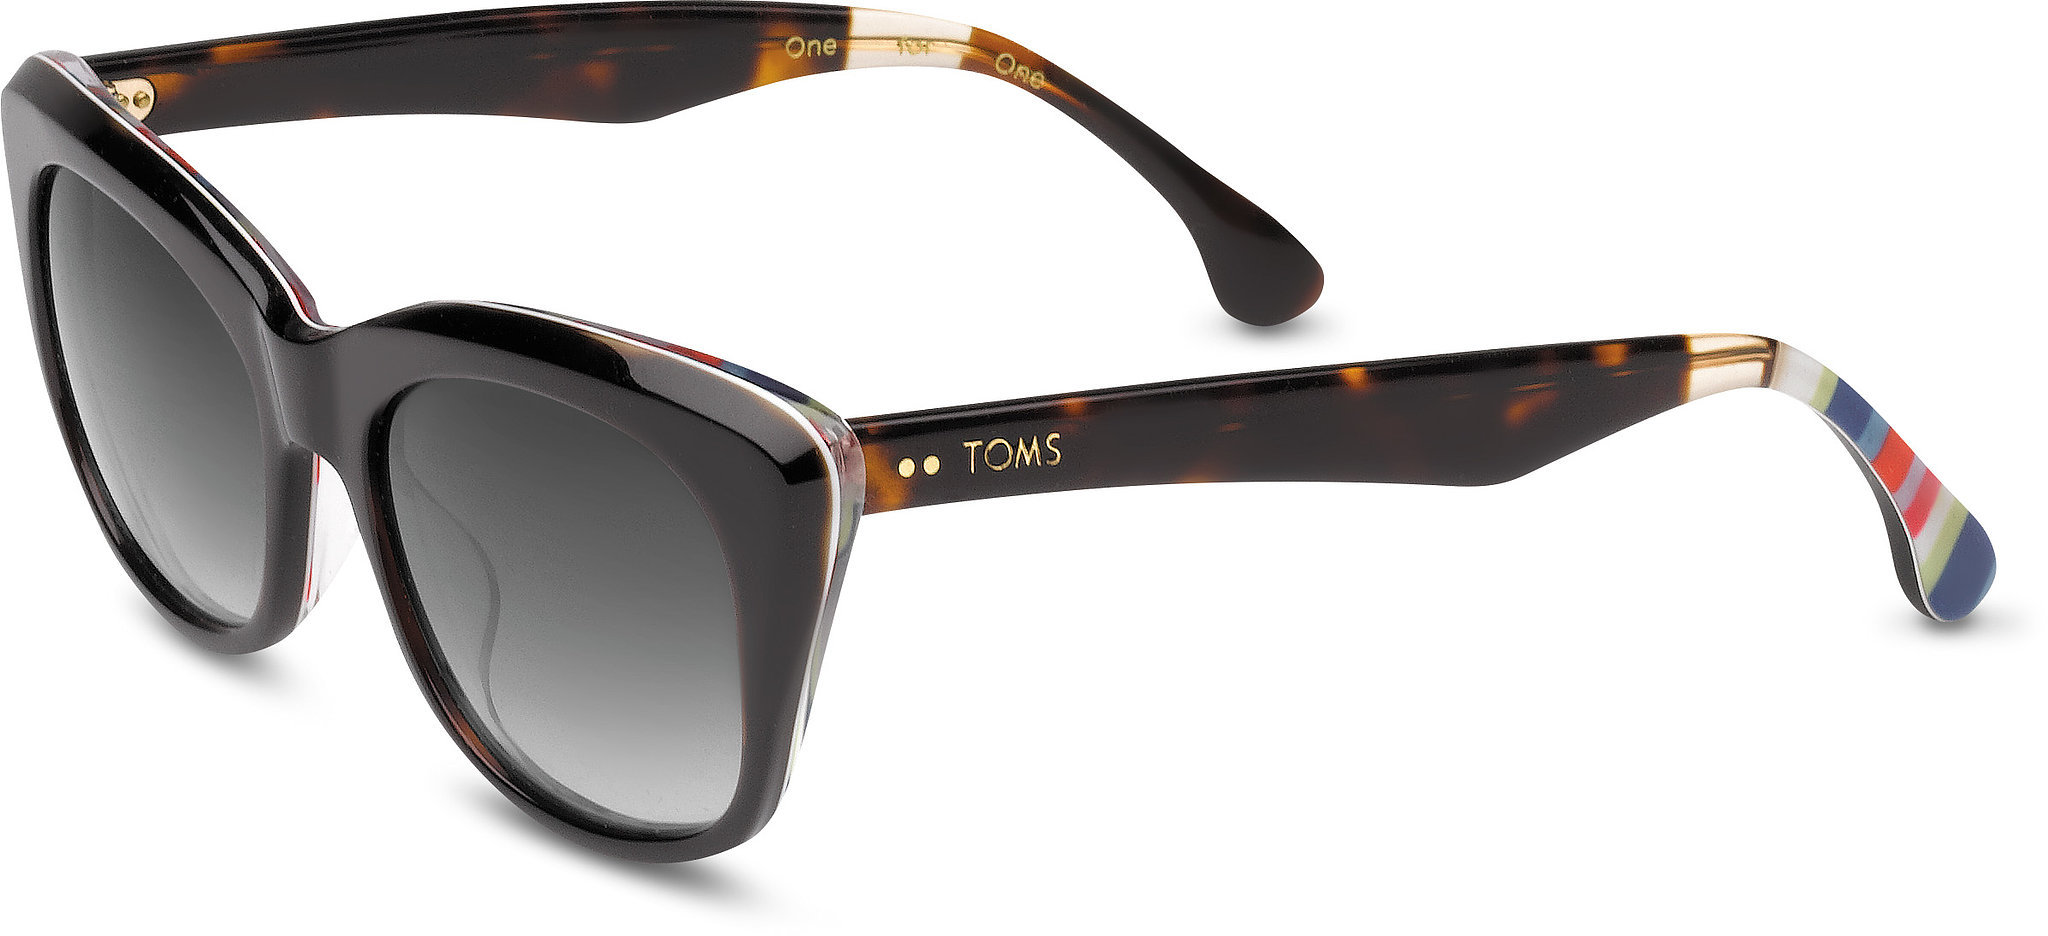 Jonathan Adler For TOMS Sunglasses | This Might Be the ...